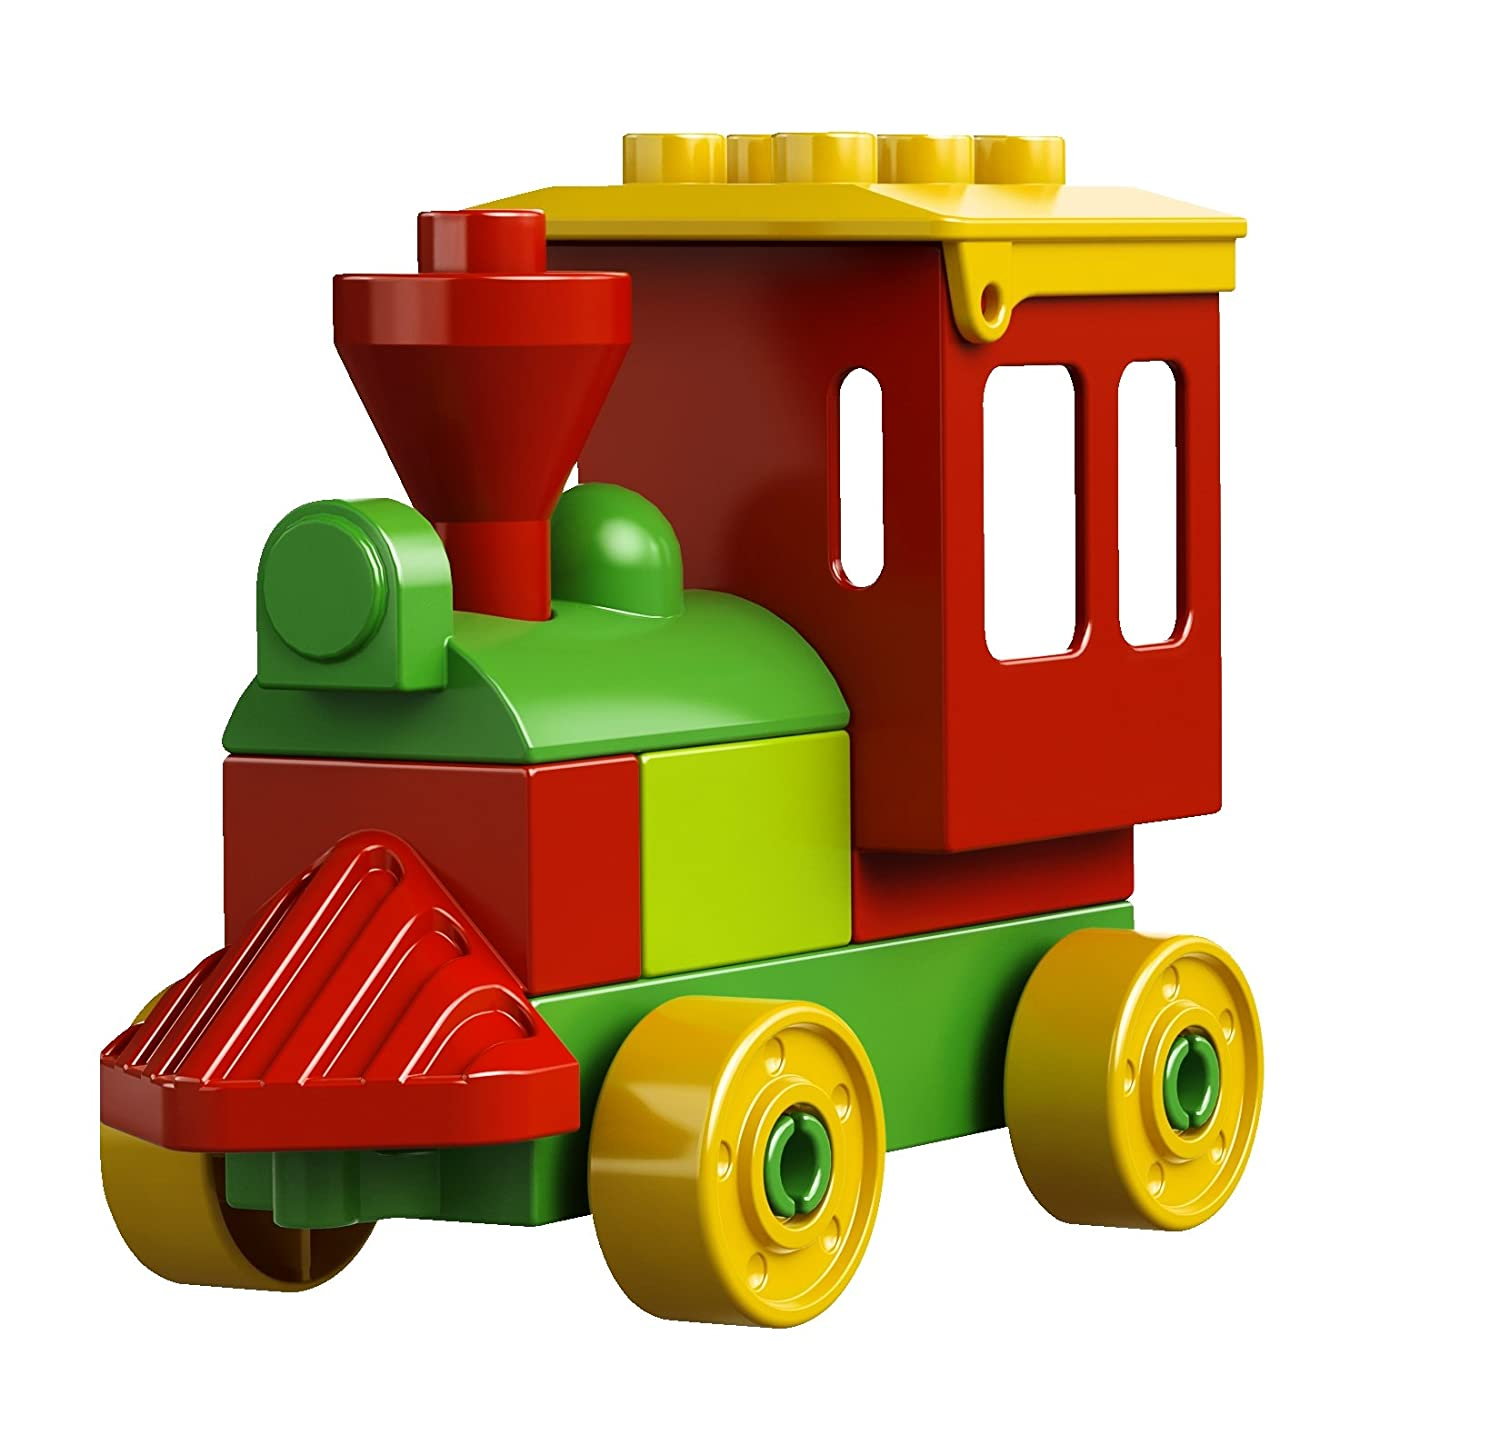 Amazon.com: LEGO DUPLO Number Train 10558 (Discontinued by ...